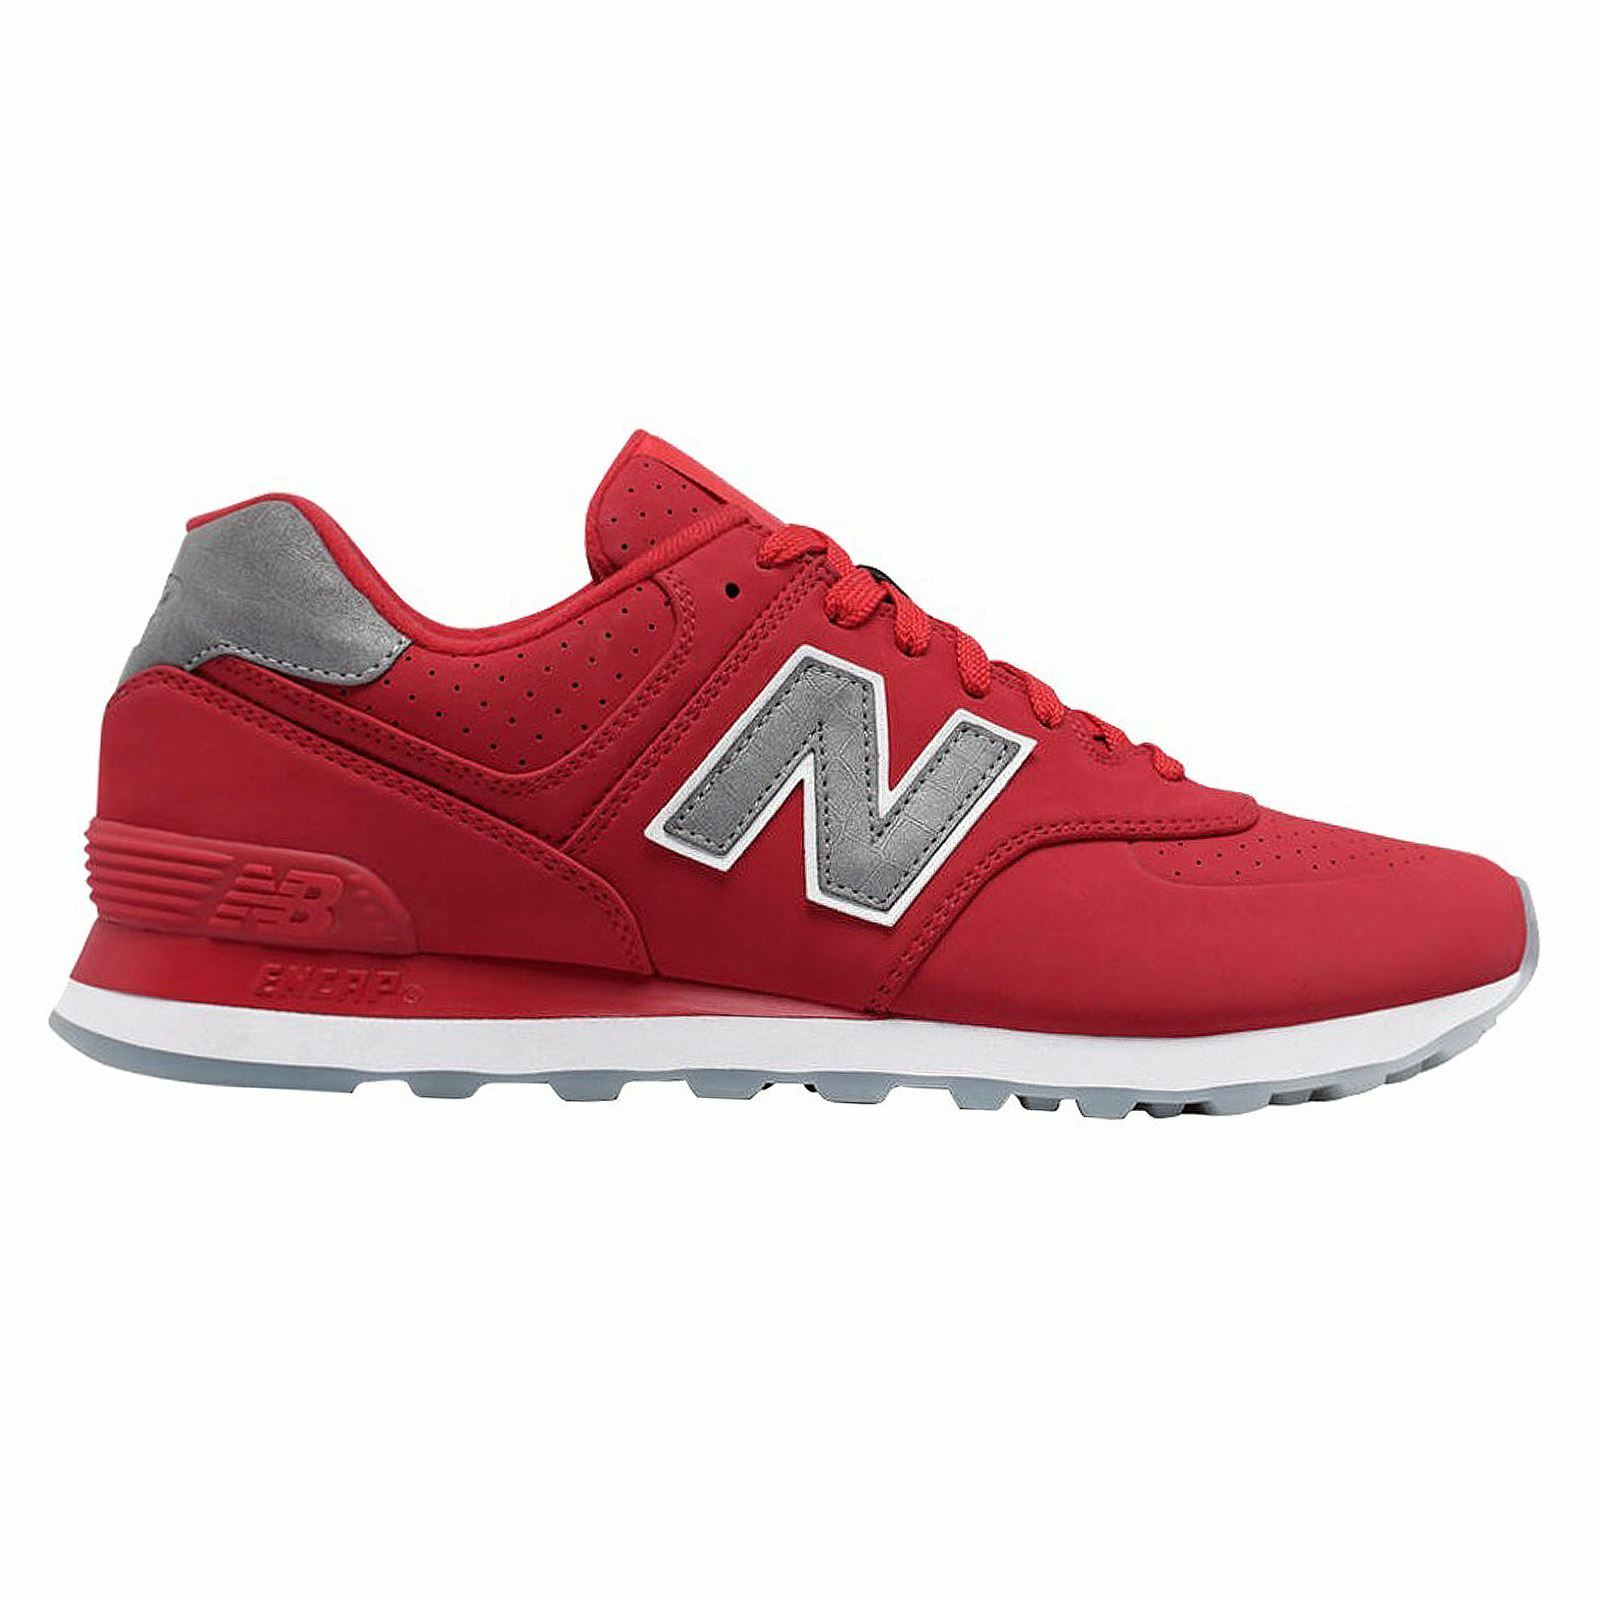 New Balance 574 Classic Traditionnels Grey Red Men's Low Top Trainers